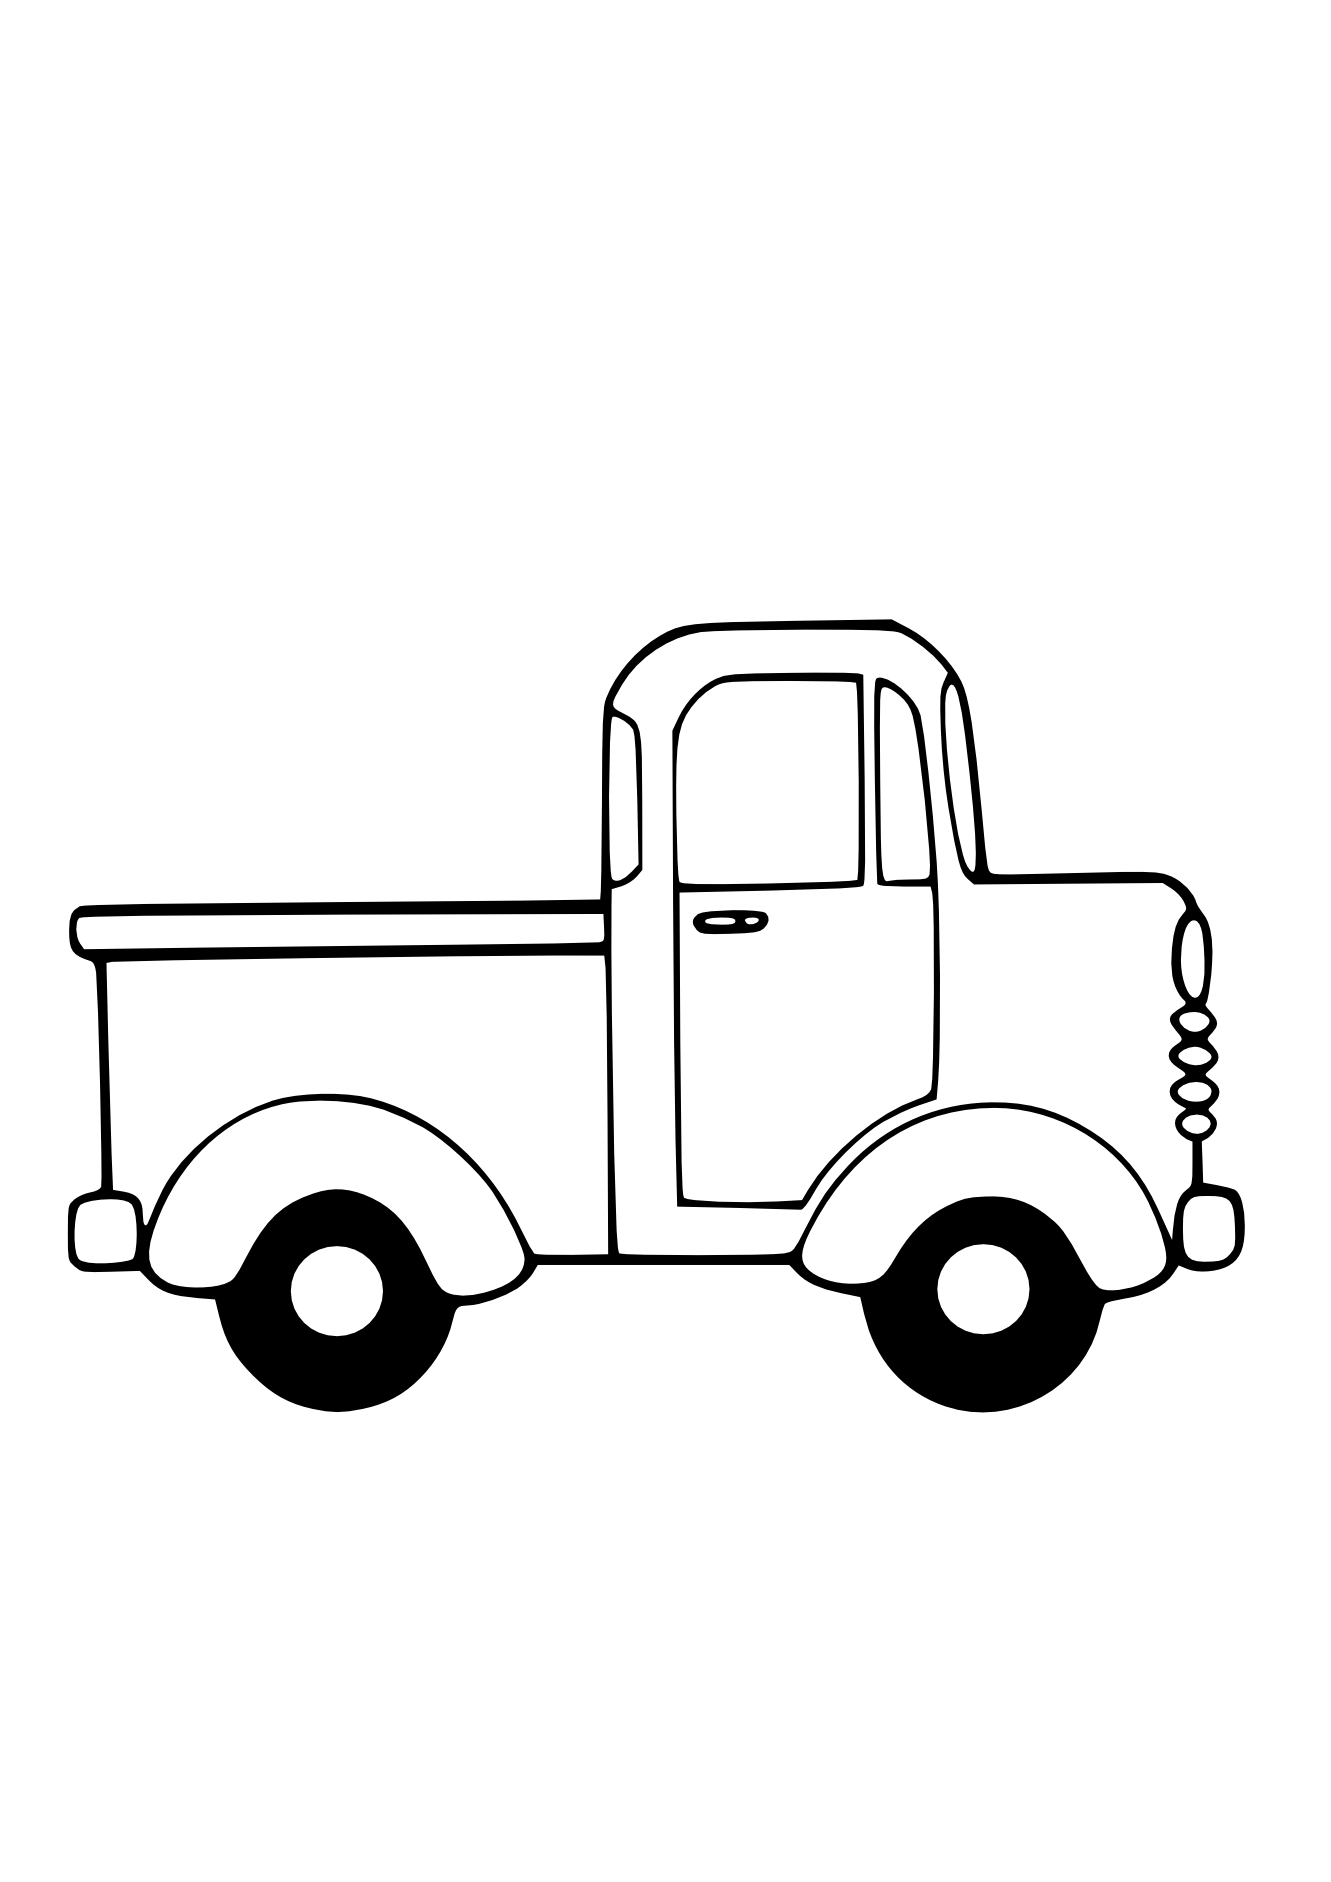 coloring truck clipart black and white dump truck clipart black and white clipart panda free clipart and truck coloring black white